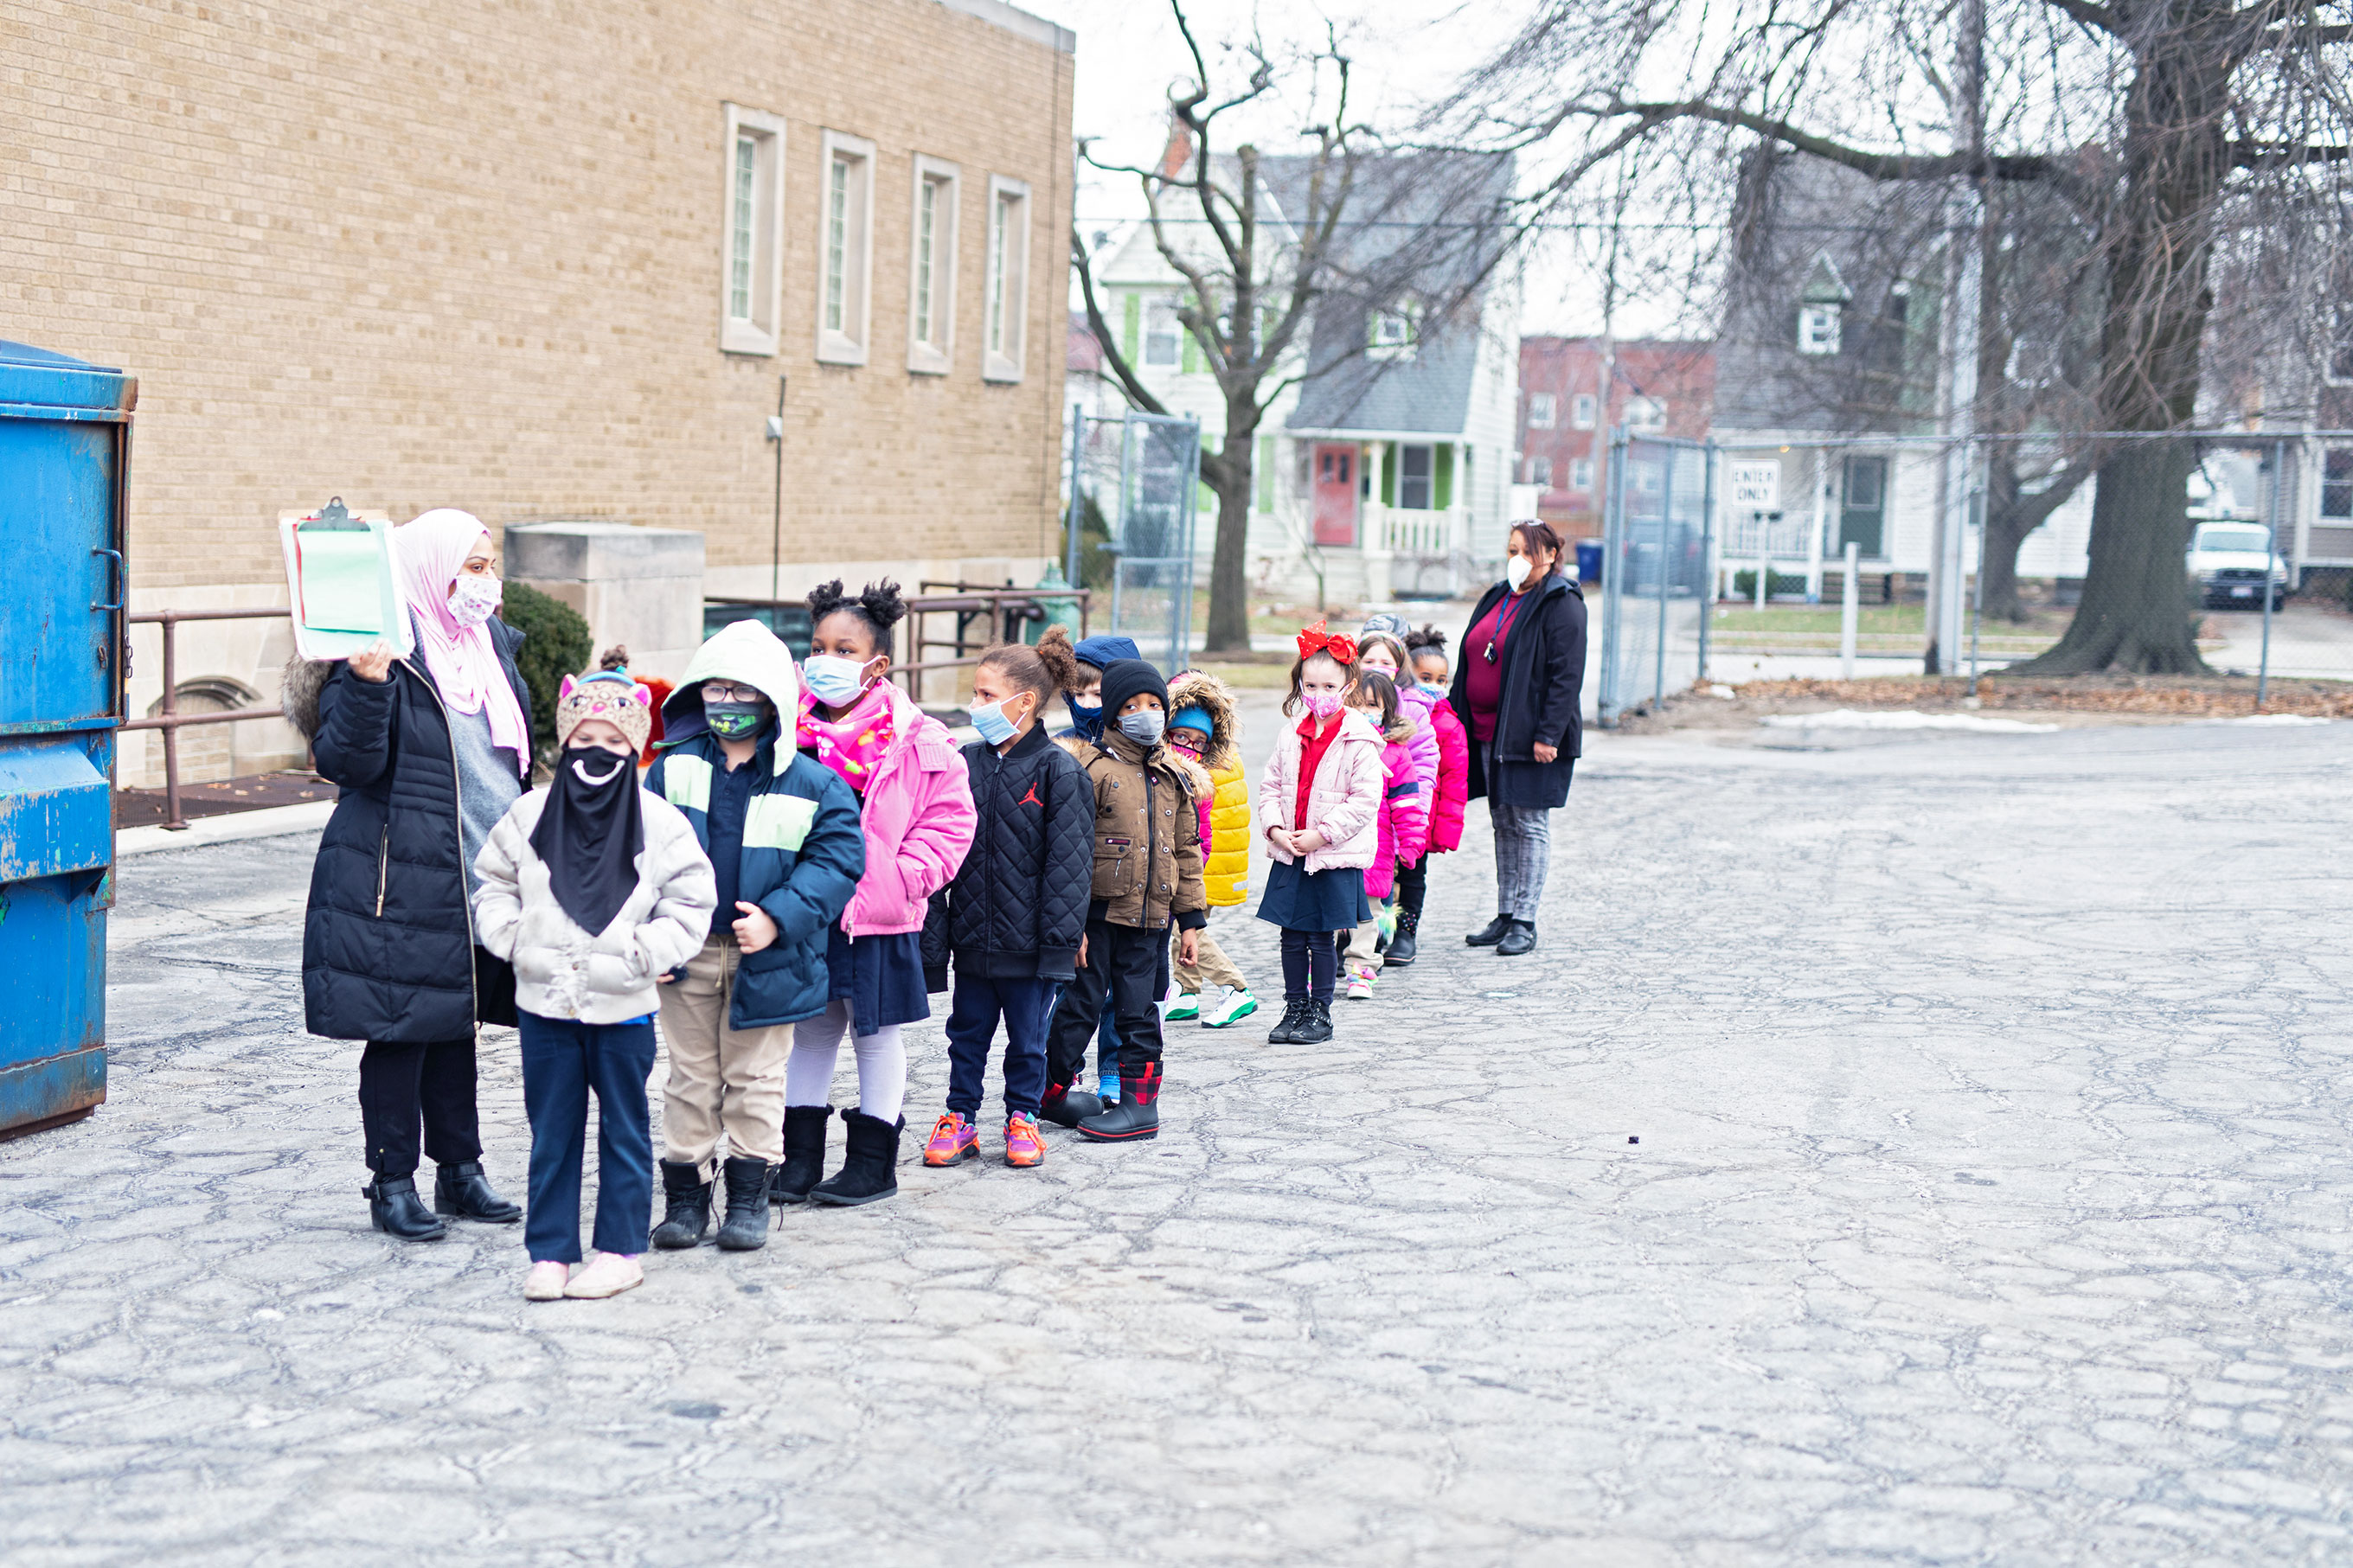 Elementary students forming a line outside the school.